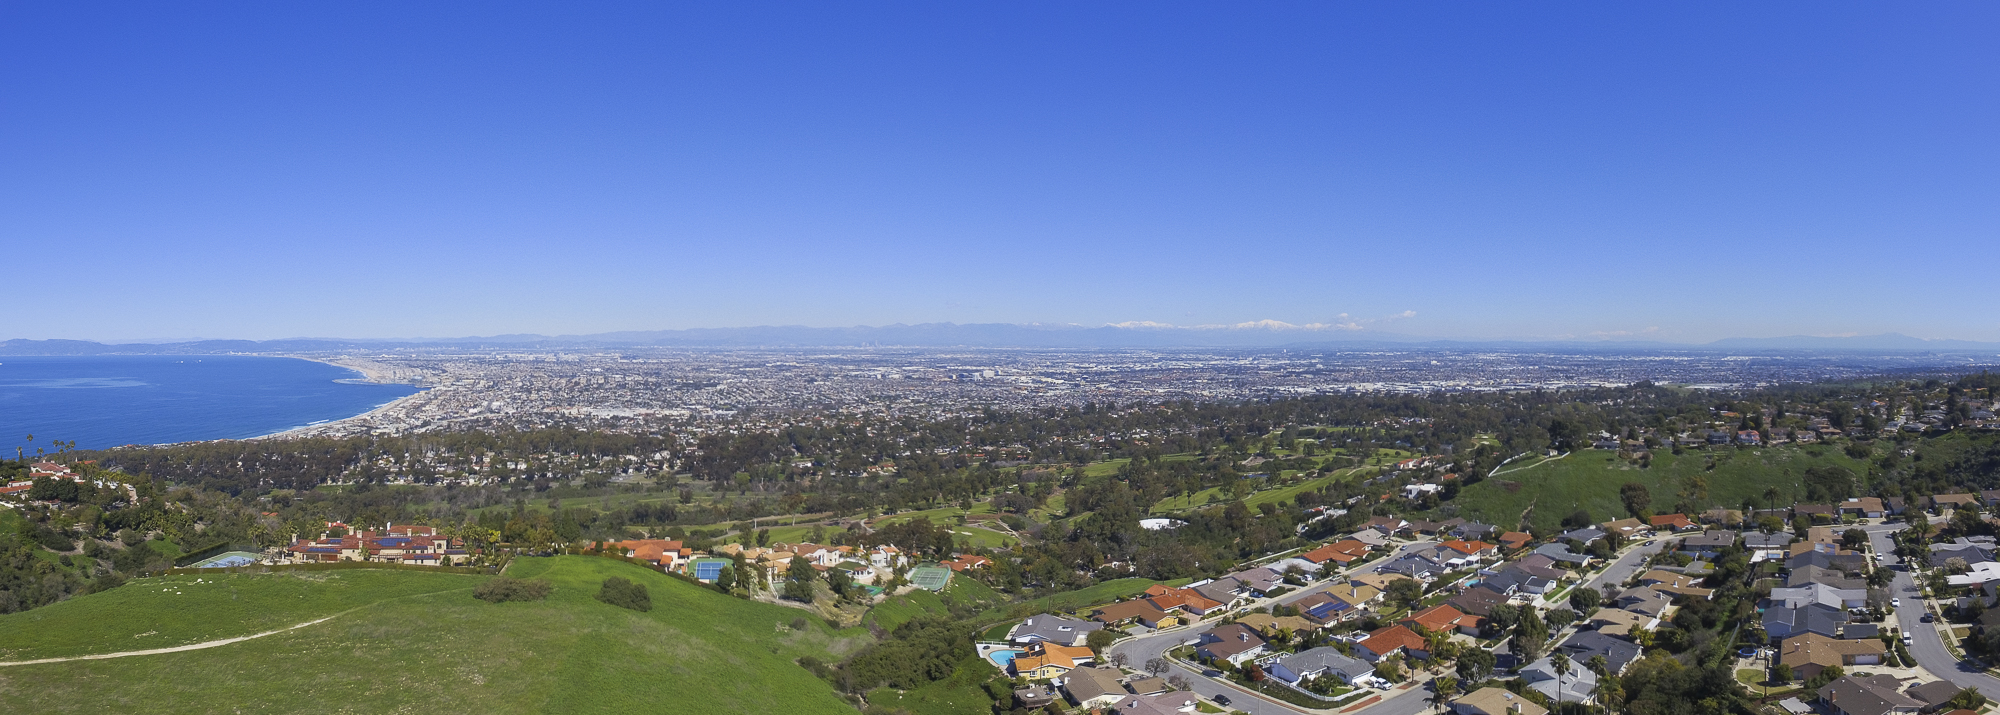 Palos Verdes Real Estate Snapshot for March 2019